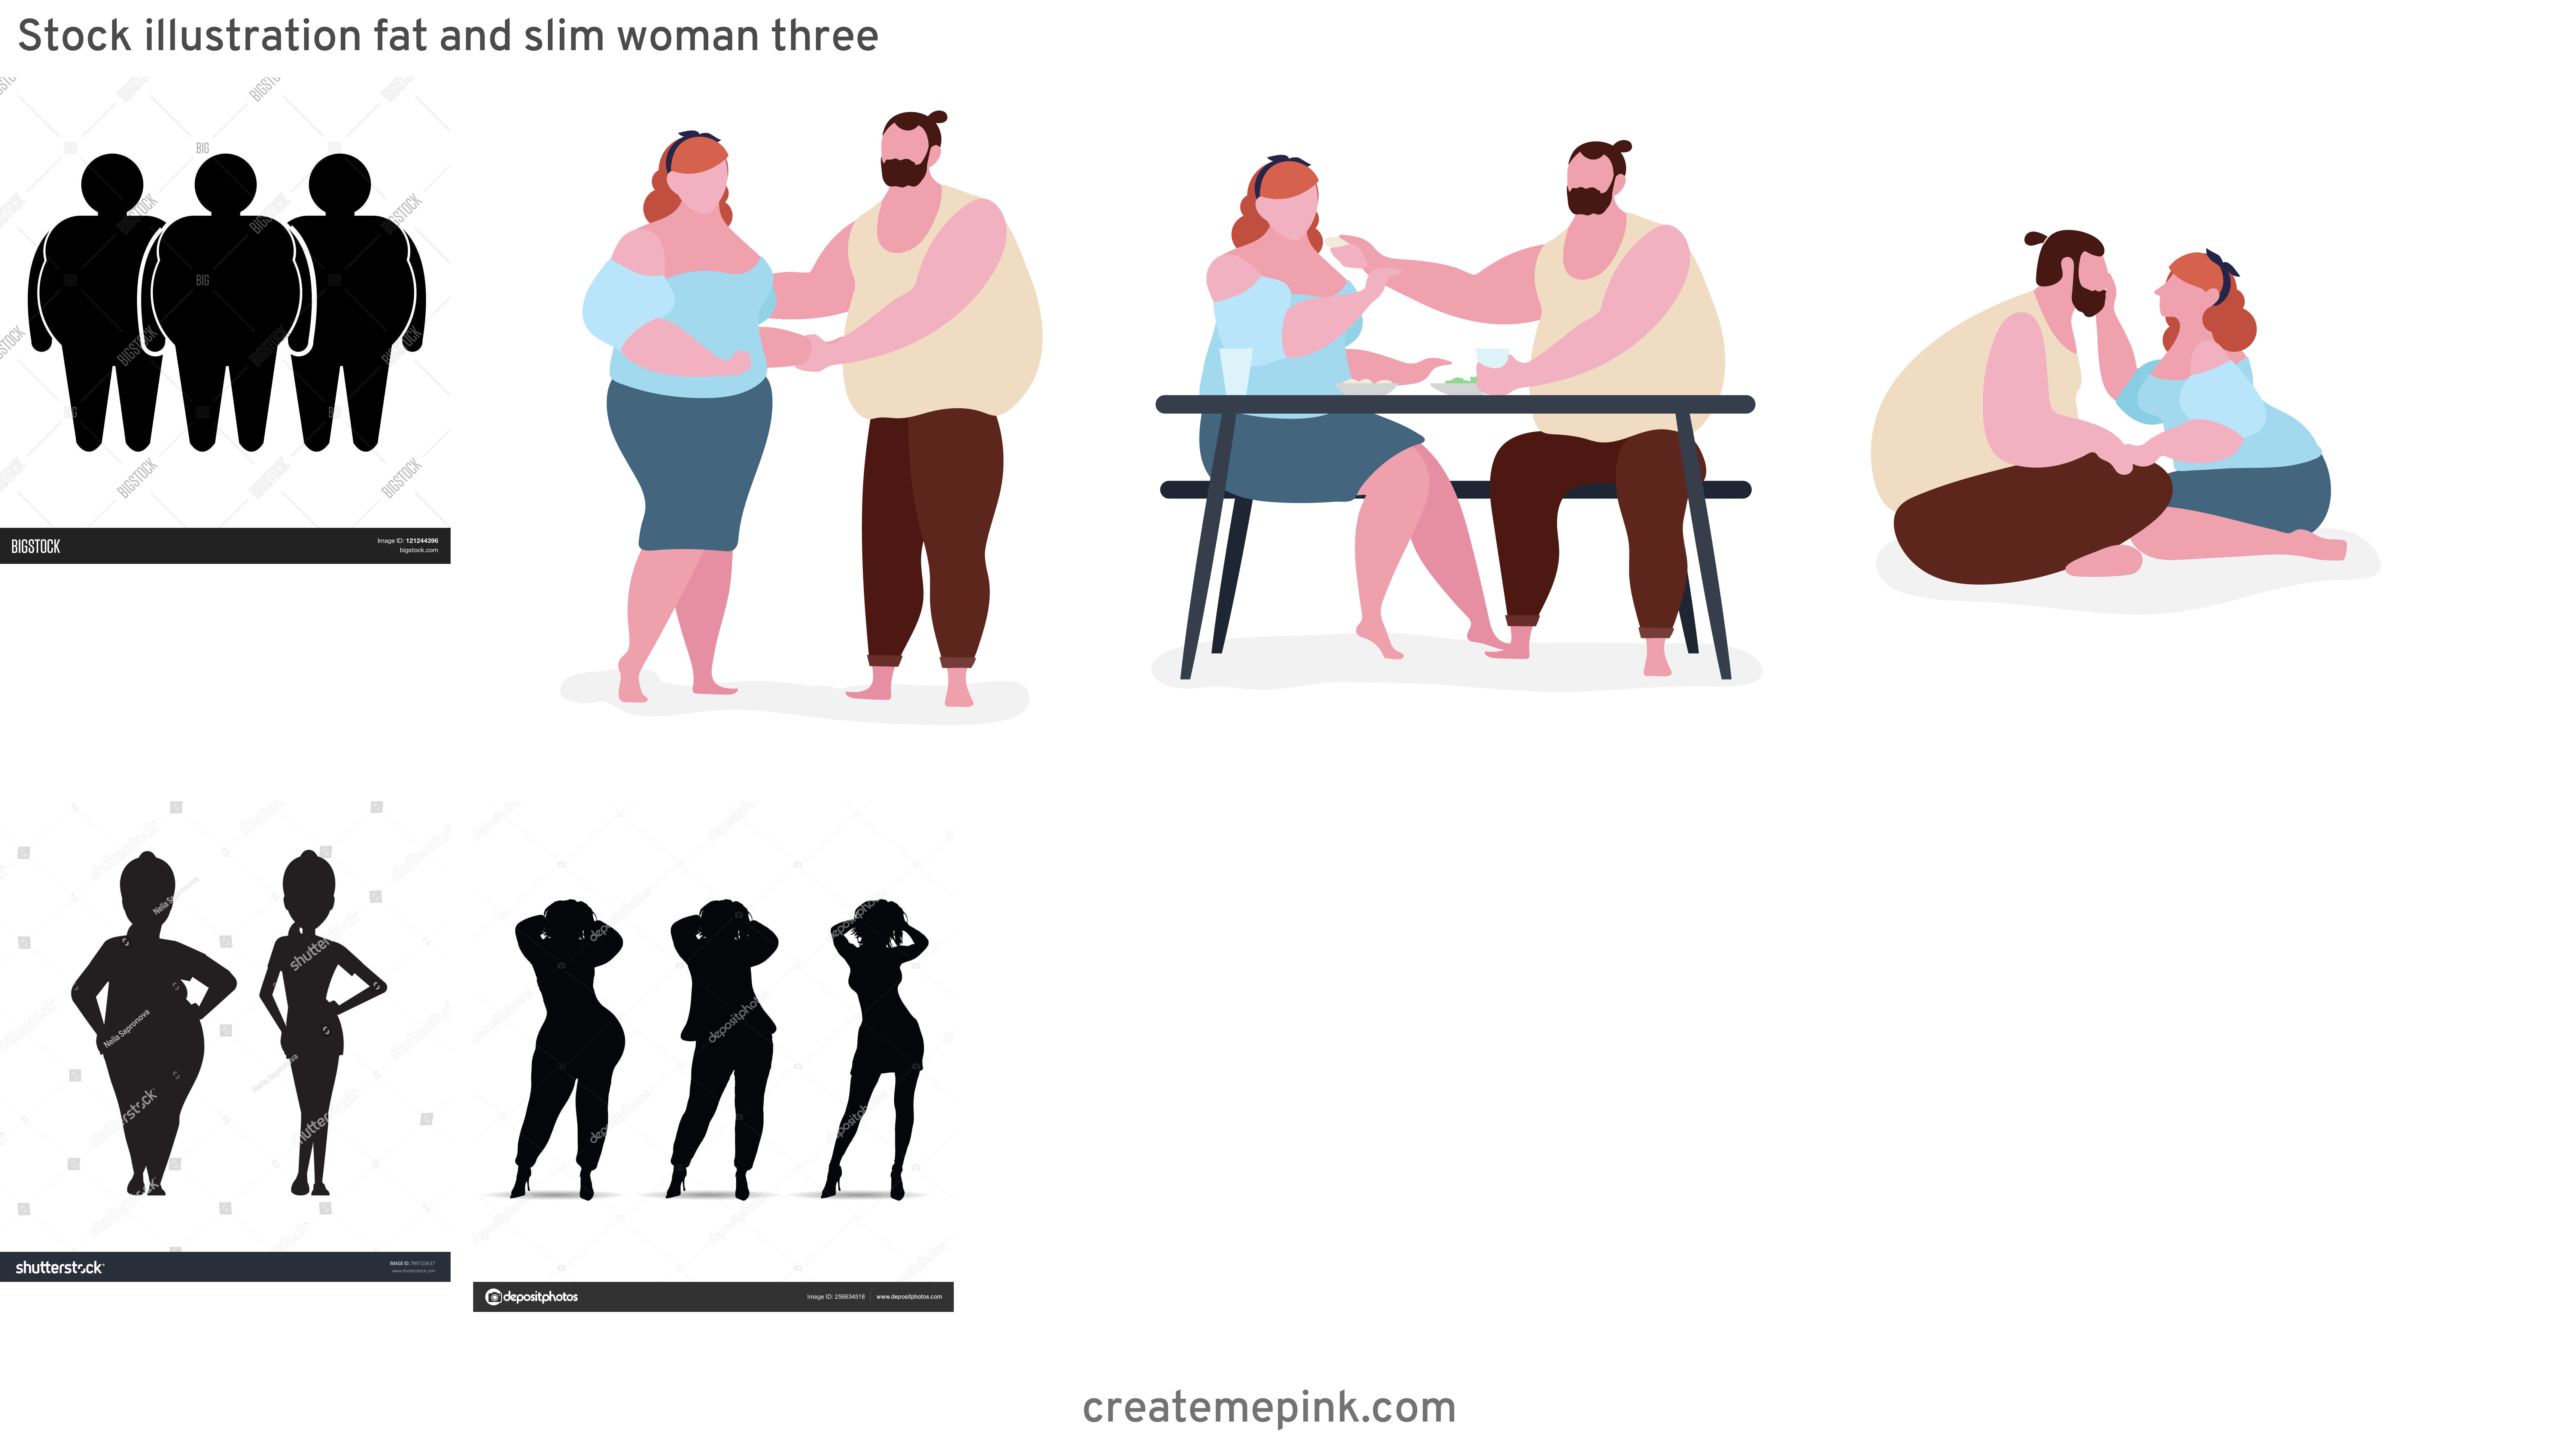 People Silhouette Vector Illustration Of Fat: Stock Illustration Fat And Slim Woman Three